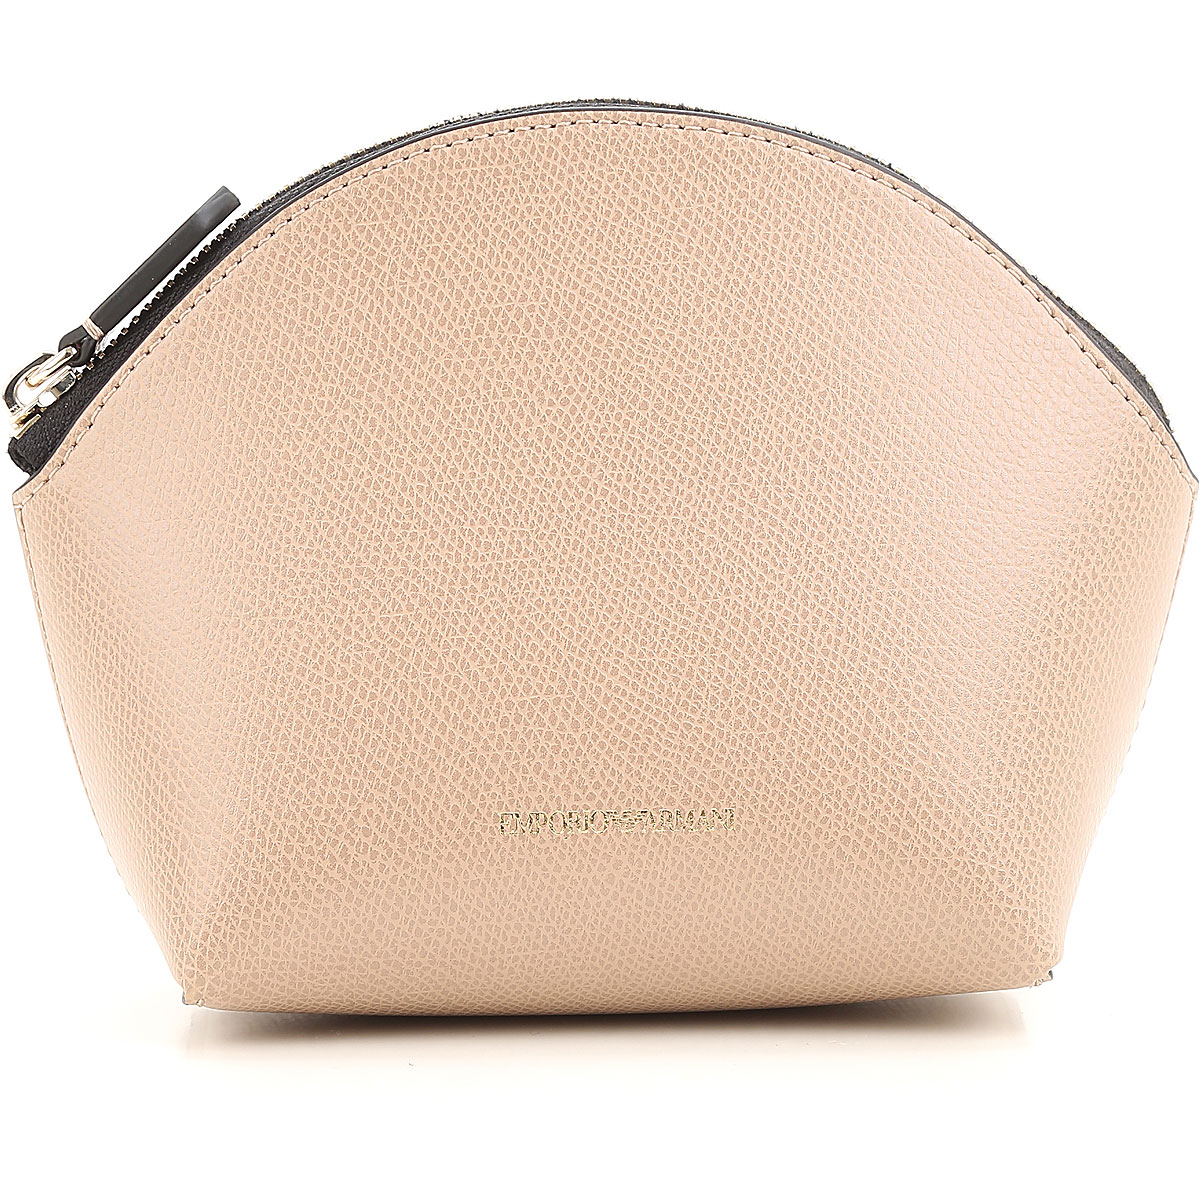 Image of Emporio Armani Makeup Bag Cosmetic Case for Women On Sale, Beige, Leather, 2017